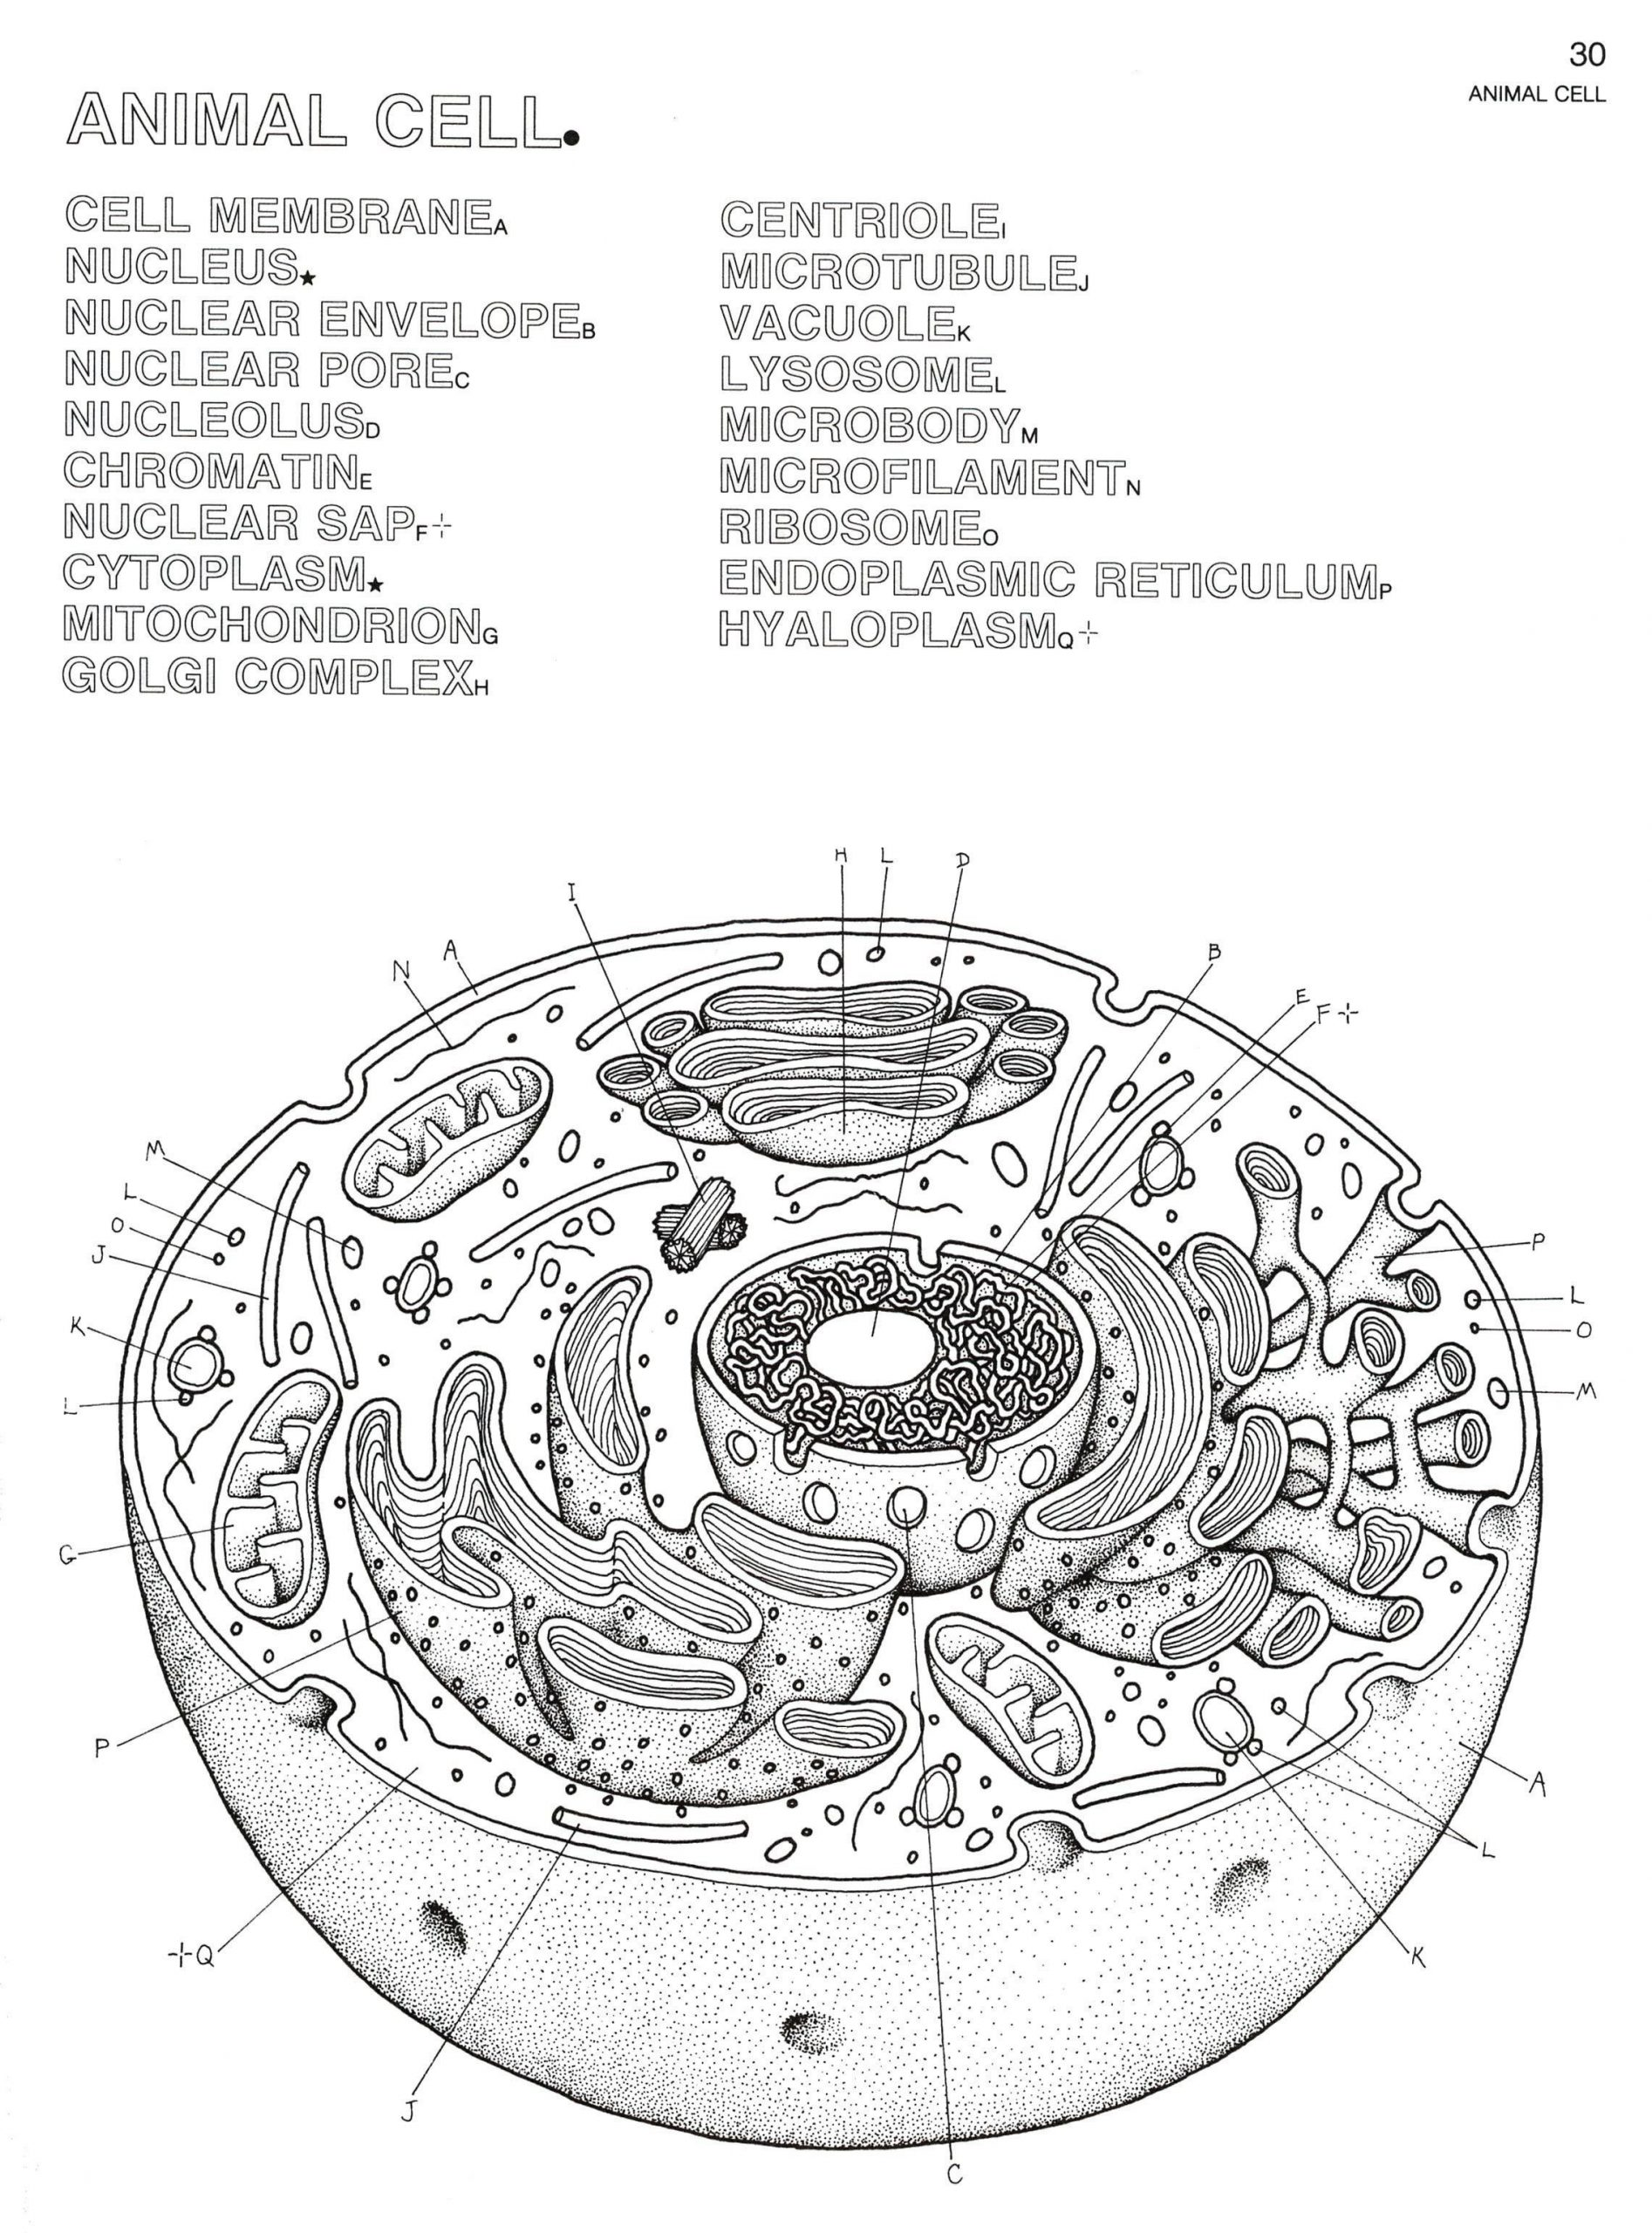 Awesome Cell organelle Coloring Sheets in 2020